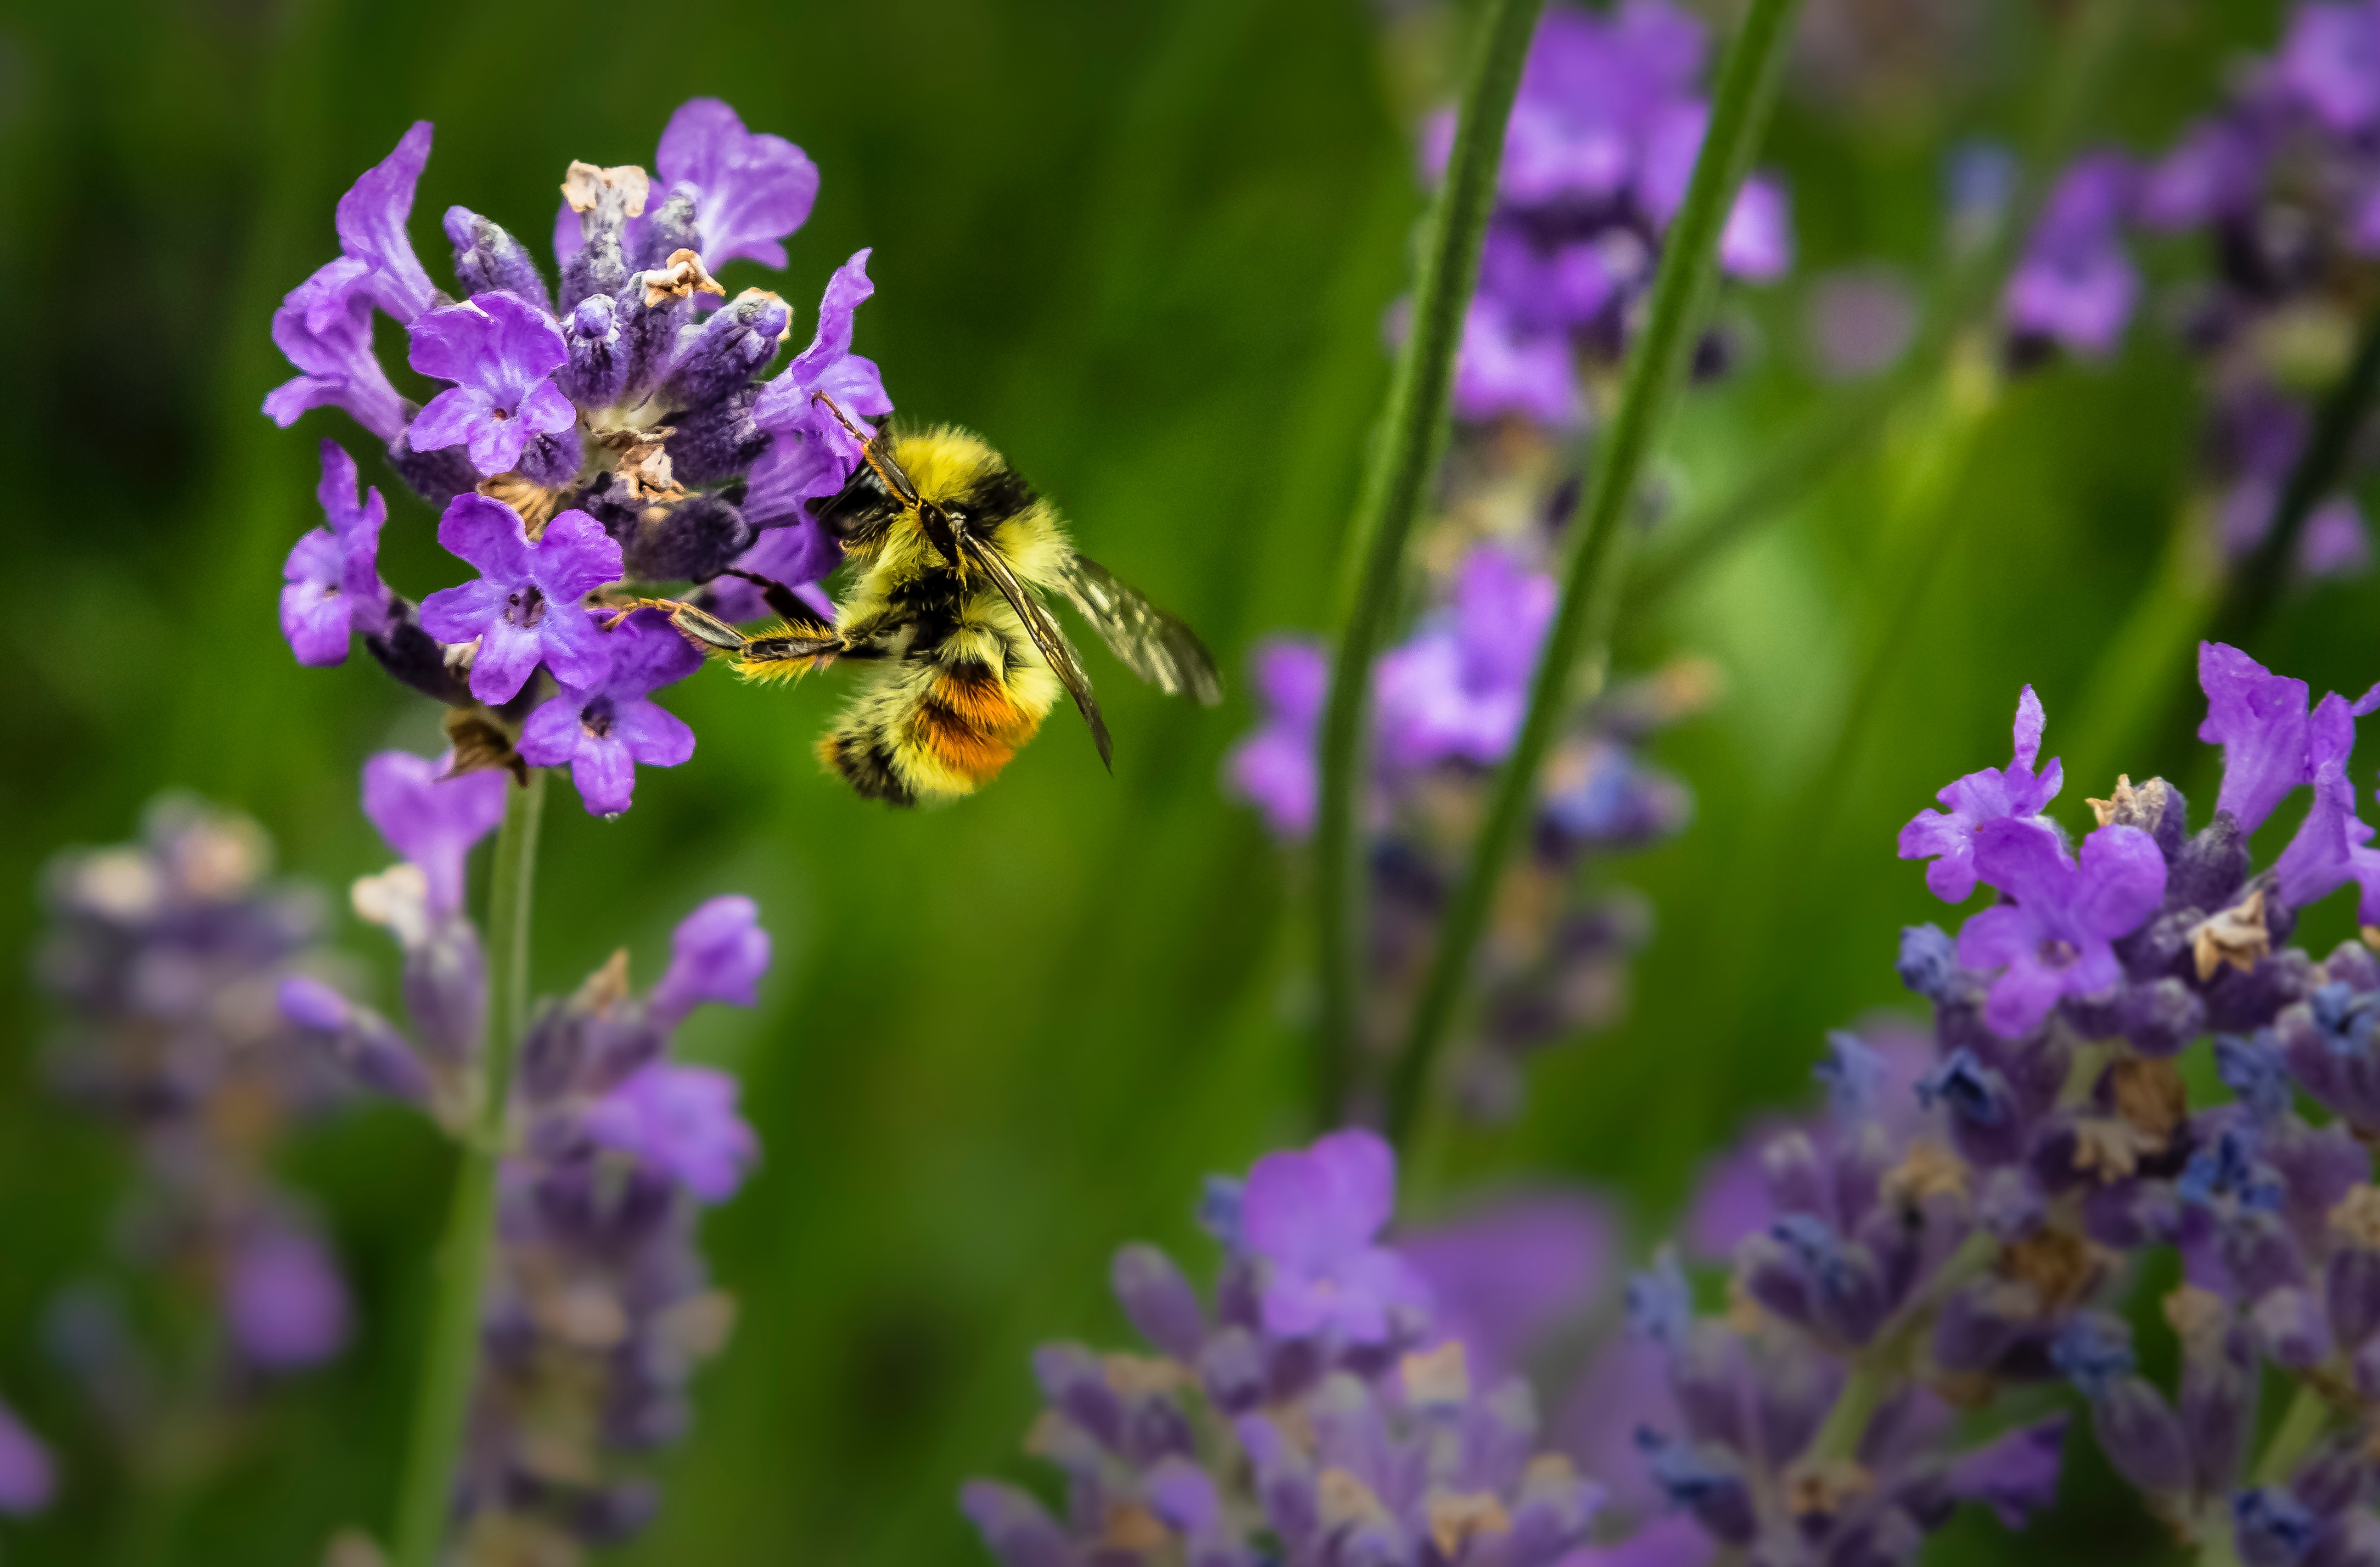 Bee pollinates wildflowers.